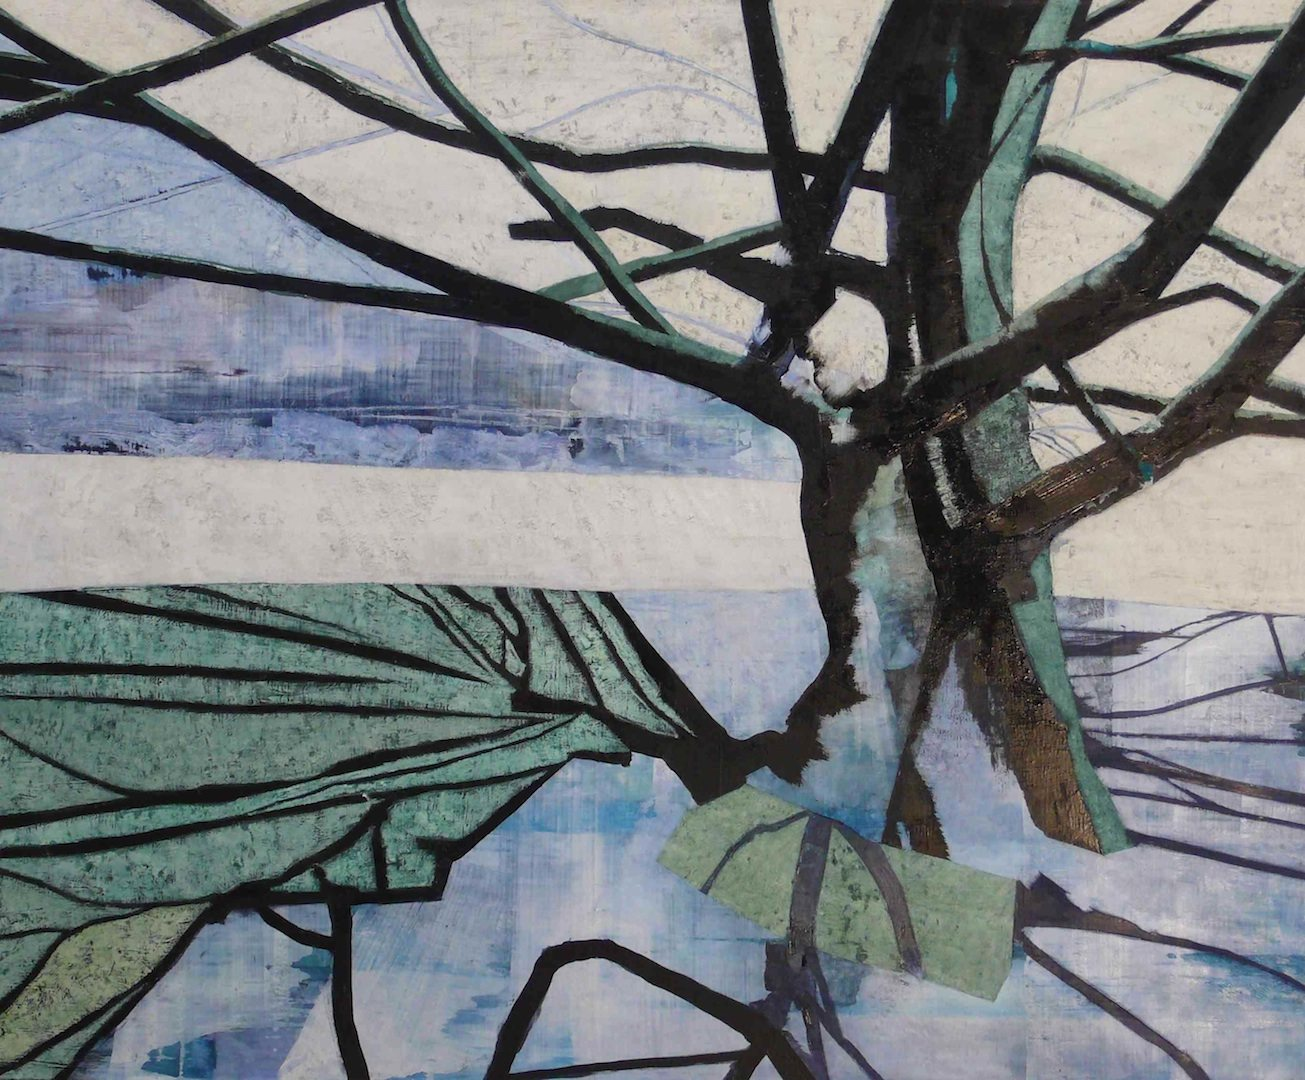 'Hampstead Tree' - Oil on Canvas, 148x178cm, 2014 - Zoe Benbow